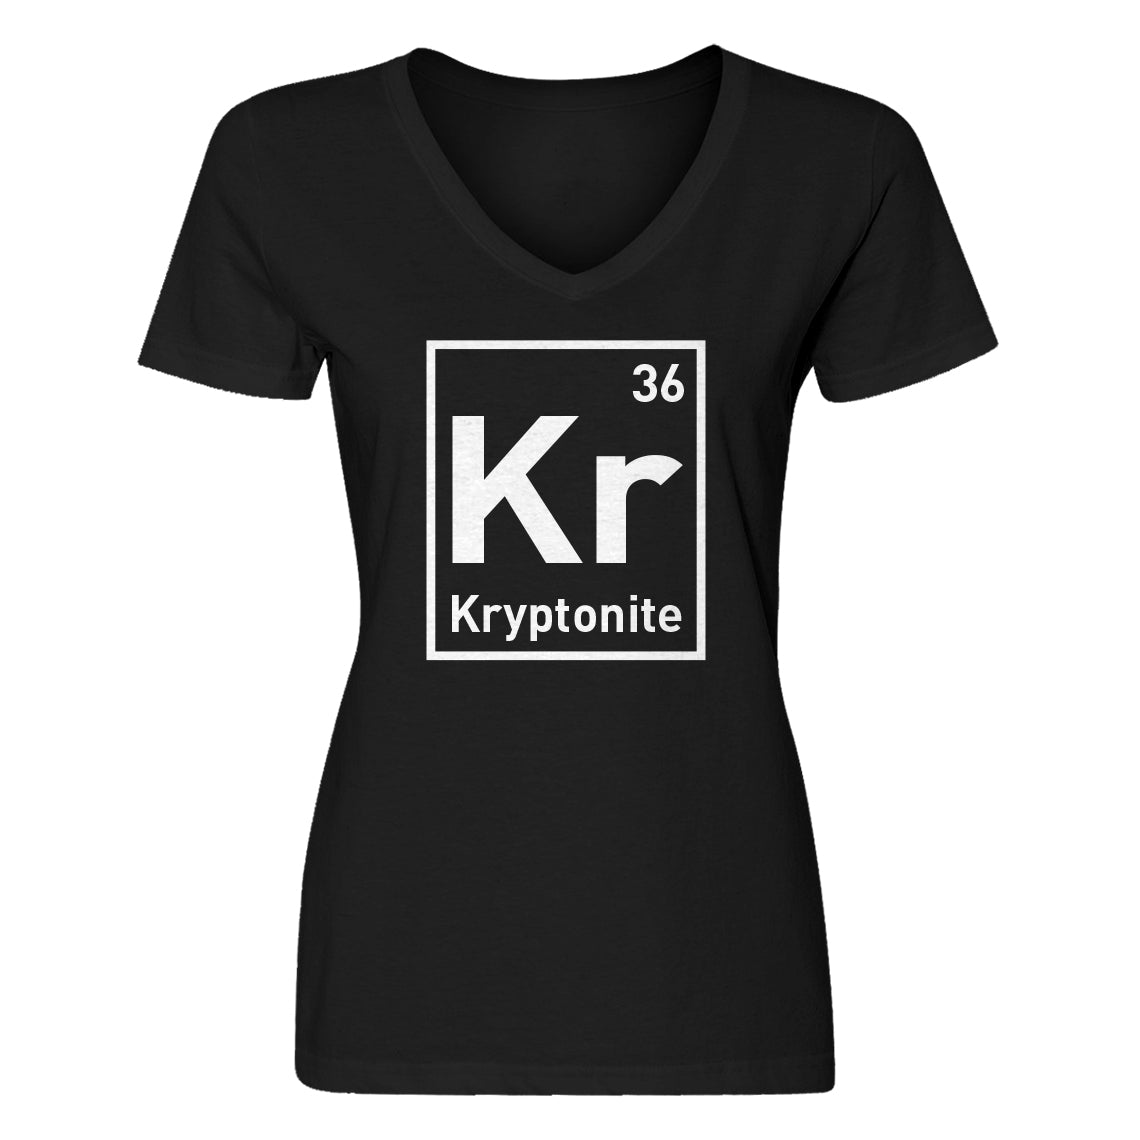 Womens Kryptonite Vneck T-shirt